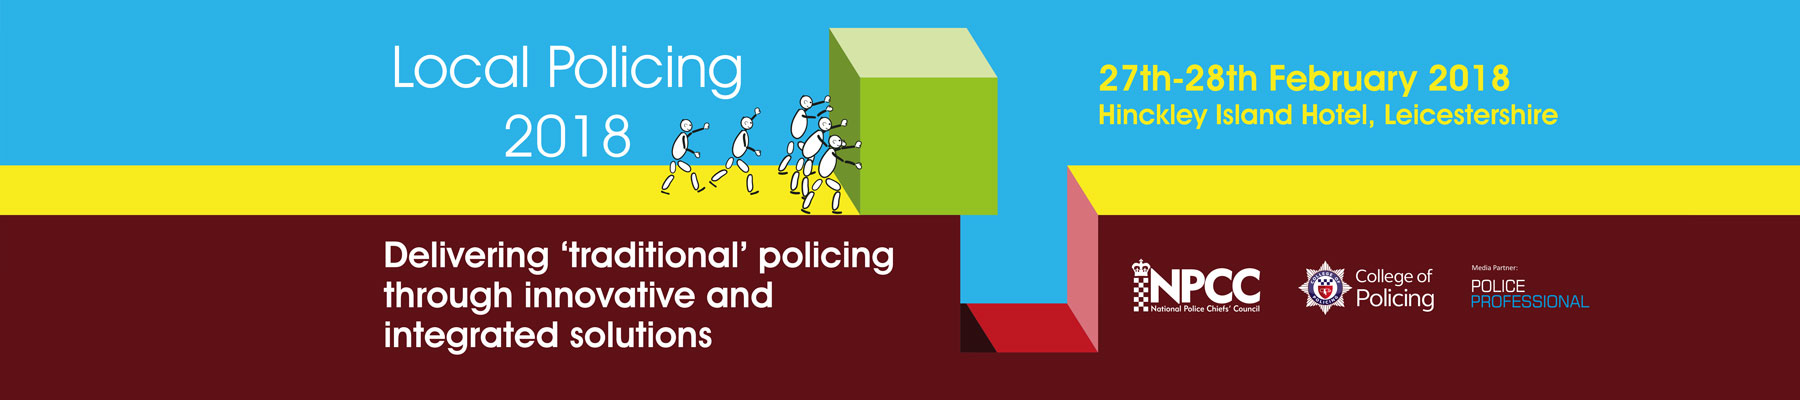 The 2018 Local Policing Conference